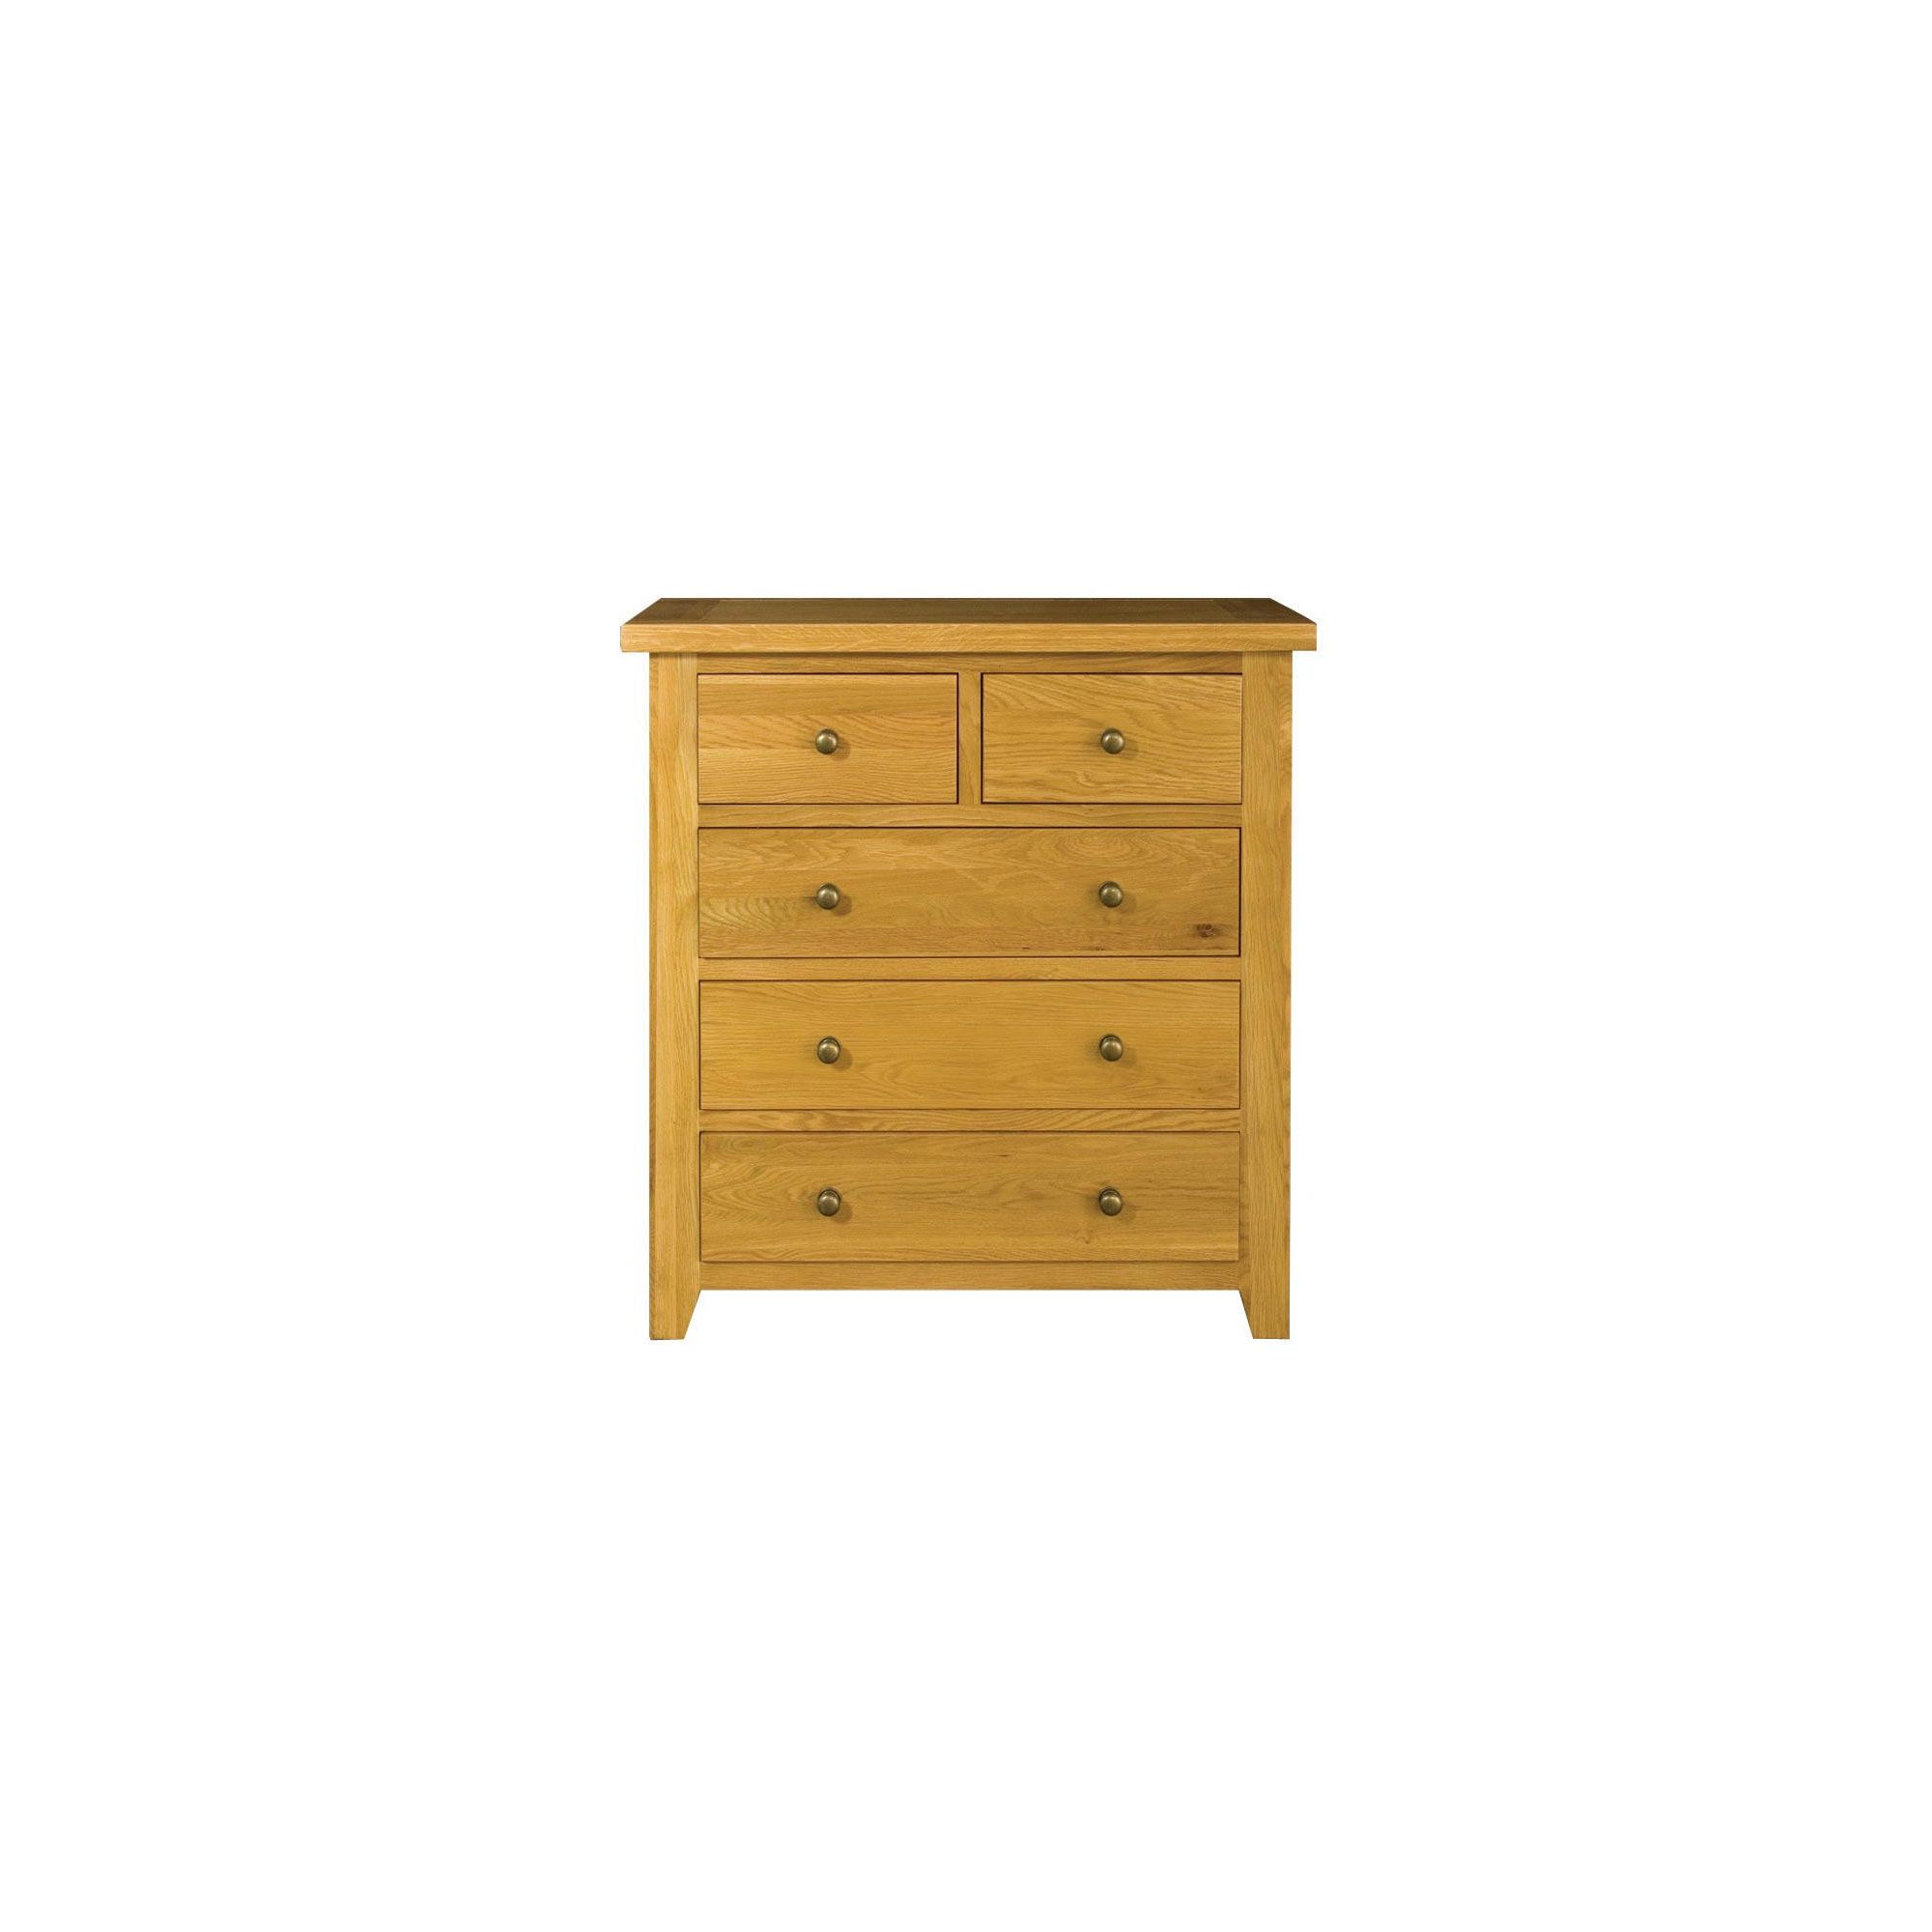 Alterton Furniture Vermont 2 over 3 Drawer Chest at Tesco Direct